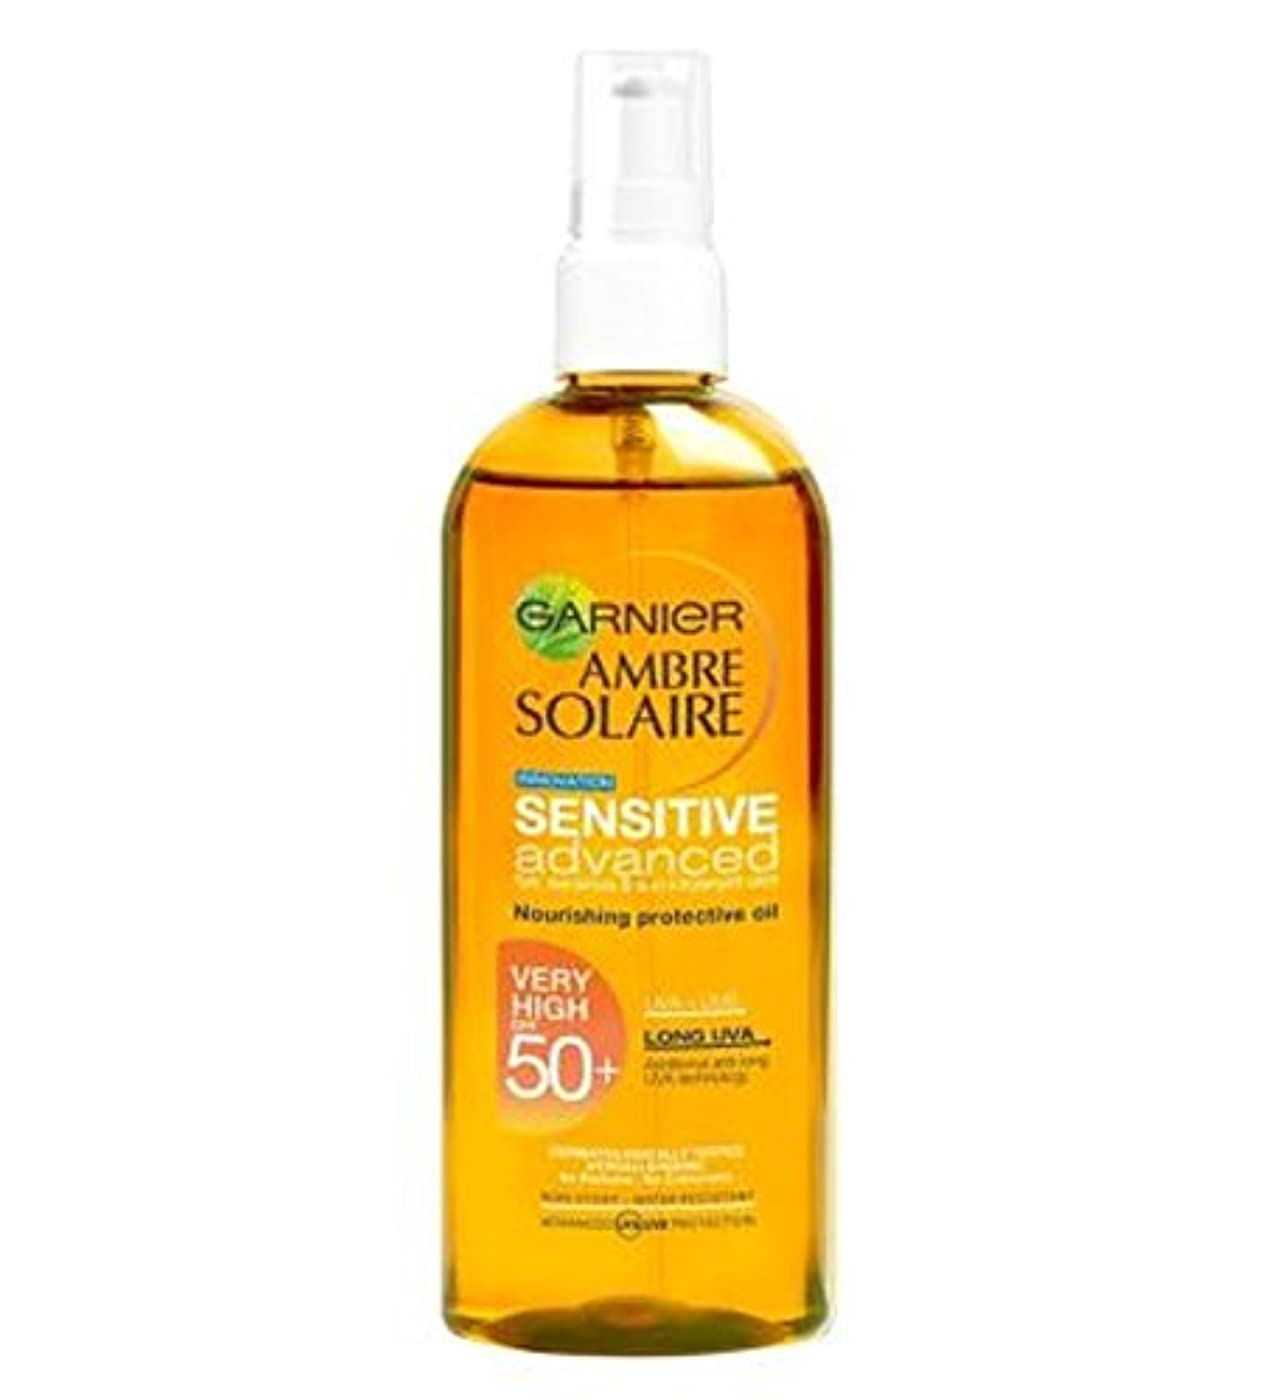 パートナー崇拝する憤るGarnier Ambre Solaire Sensitive Advanced Sun Protection Nourishing Protection Oil SPF50 150ml - 保護オイルSpf50の150...